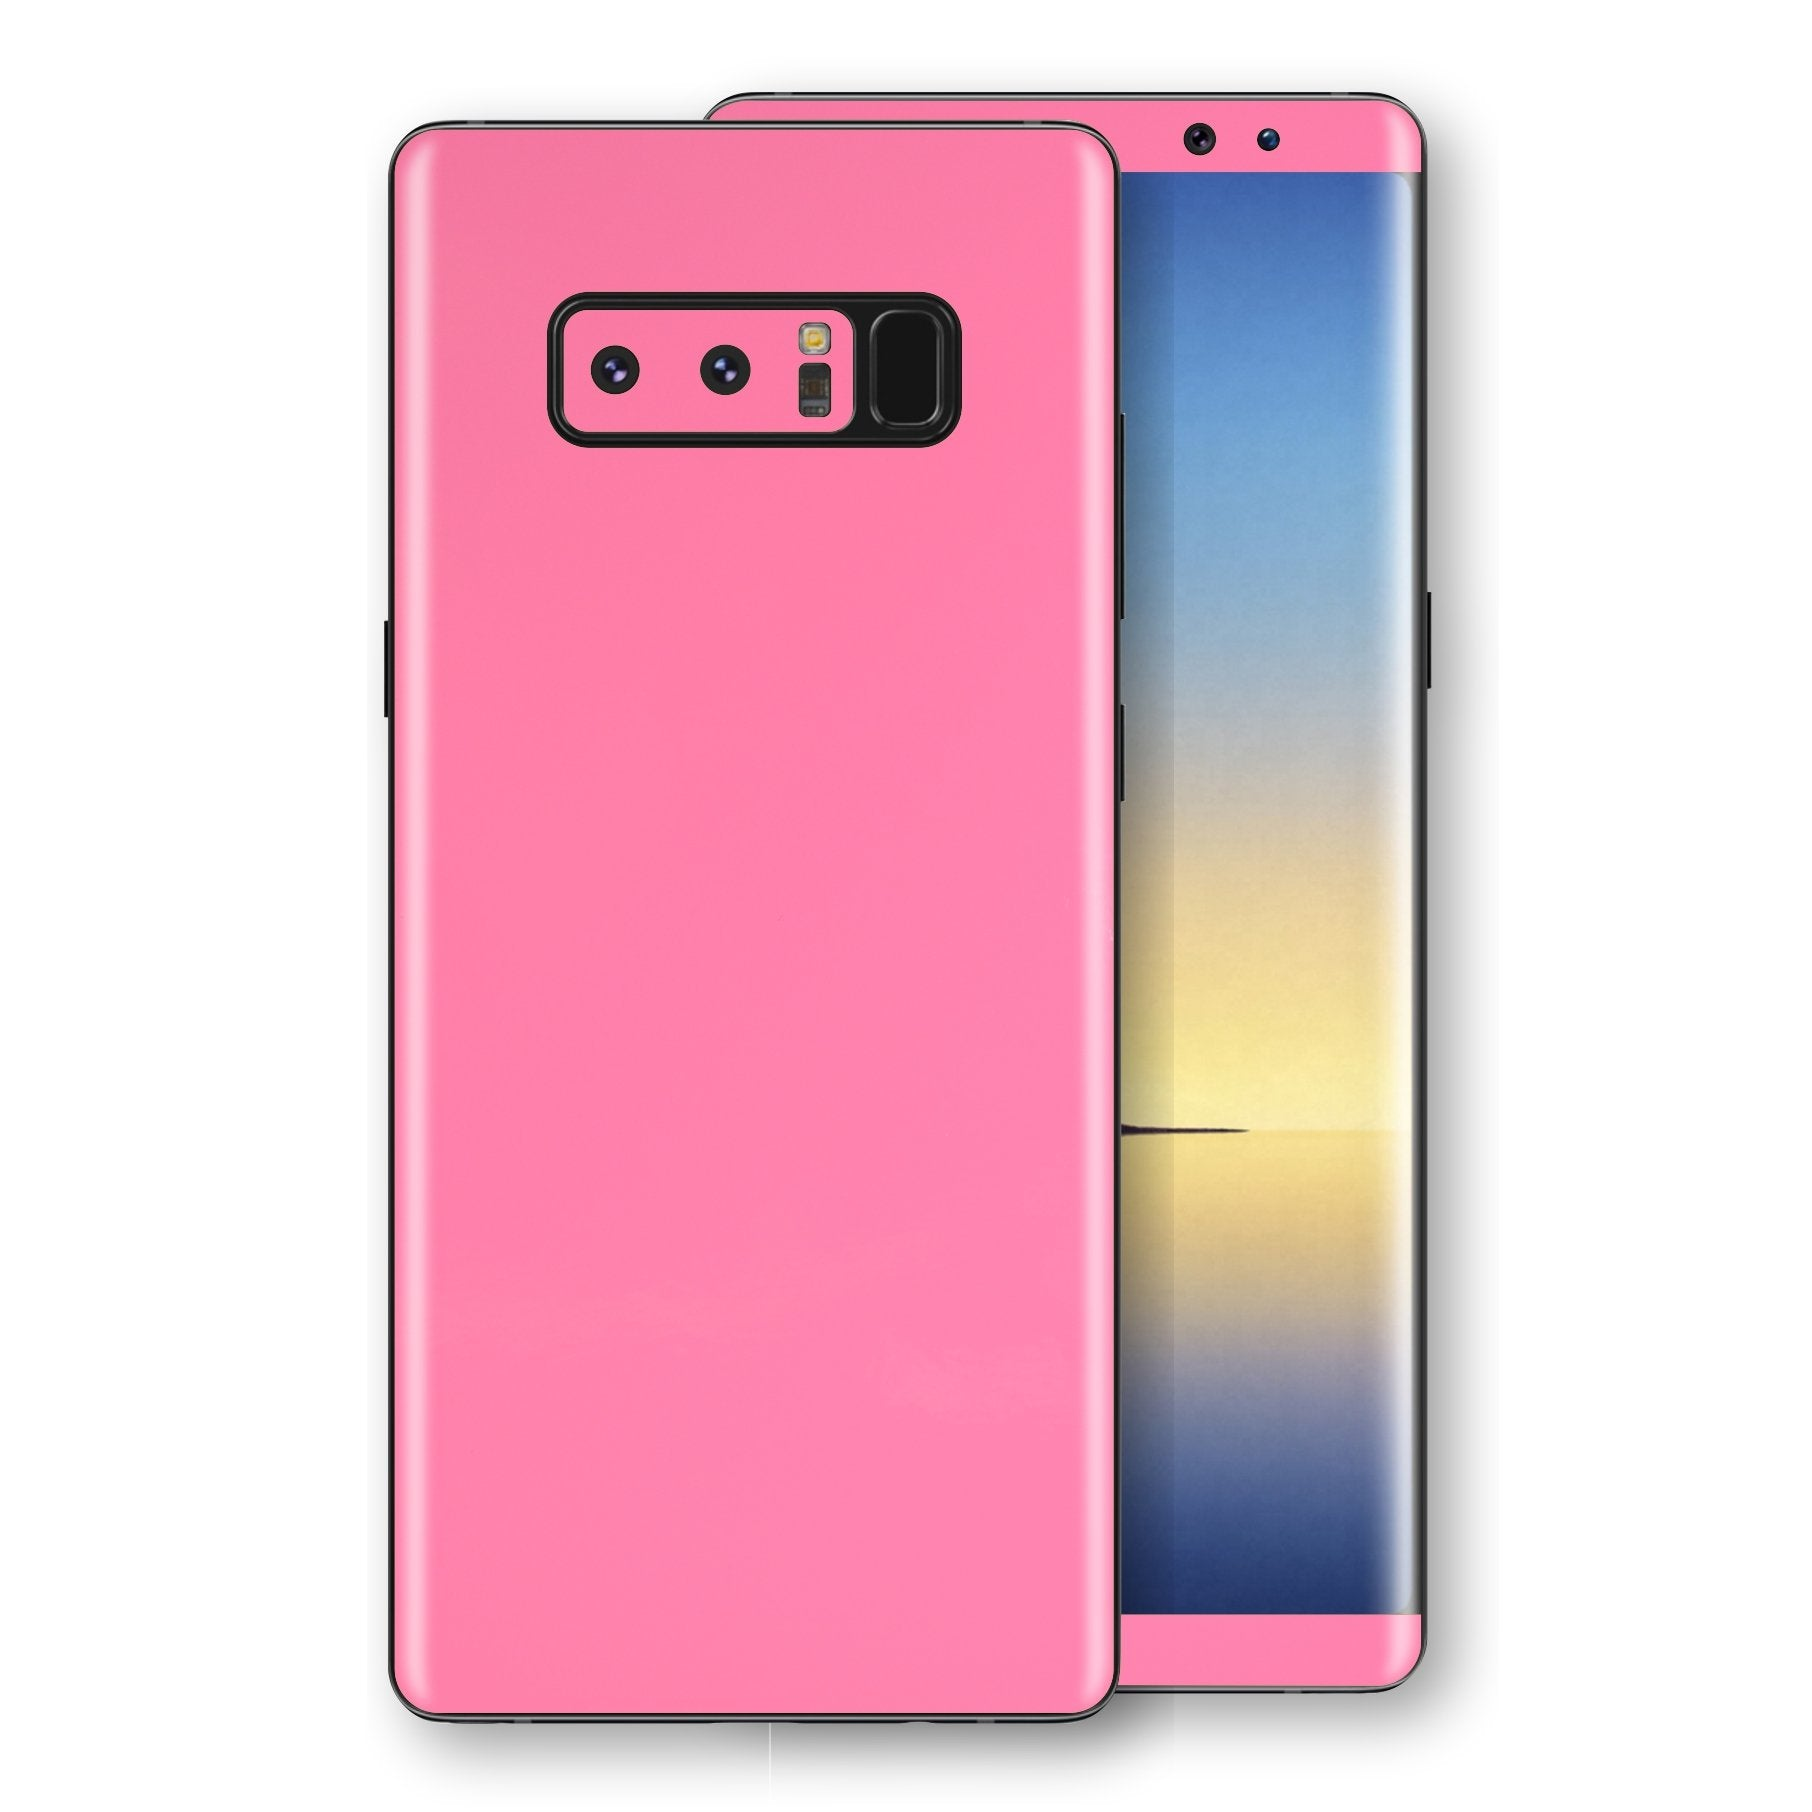 Samsung Galaxy NOTE 8 Pink Matt Skin, Decal, Wrap, Protector, Cover by EasySkinz | EasySkinz.com